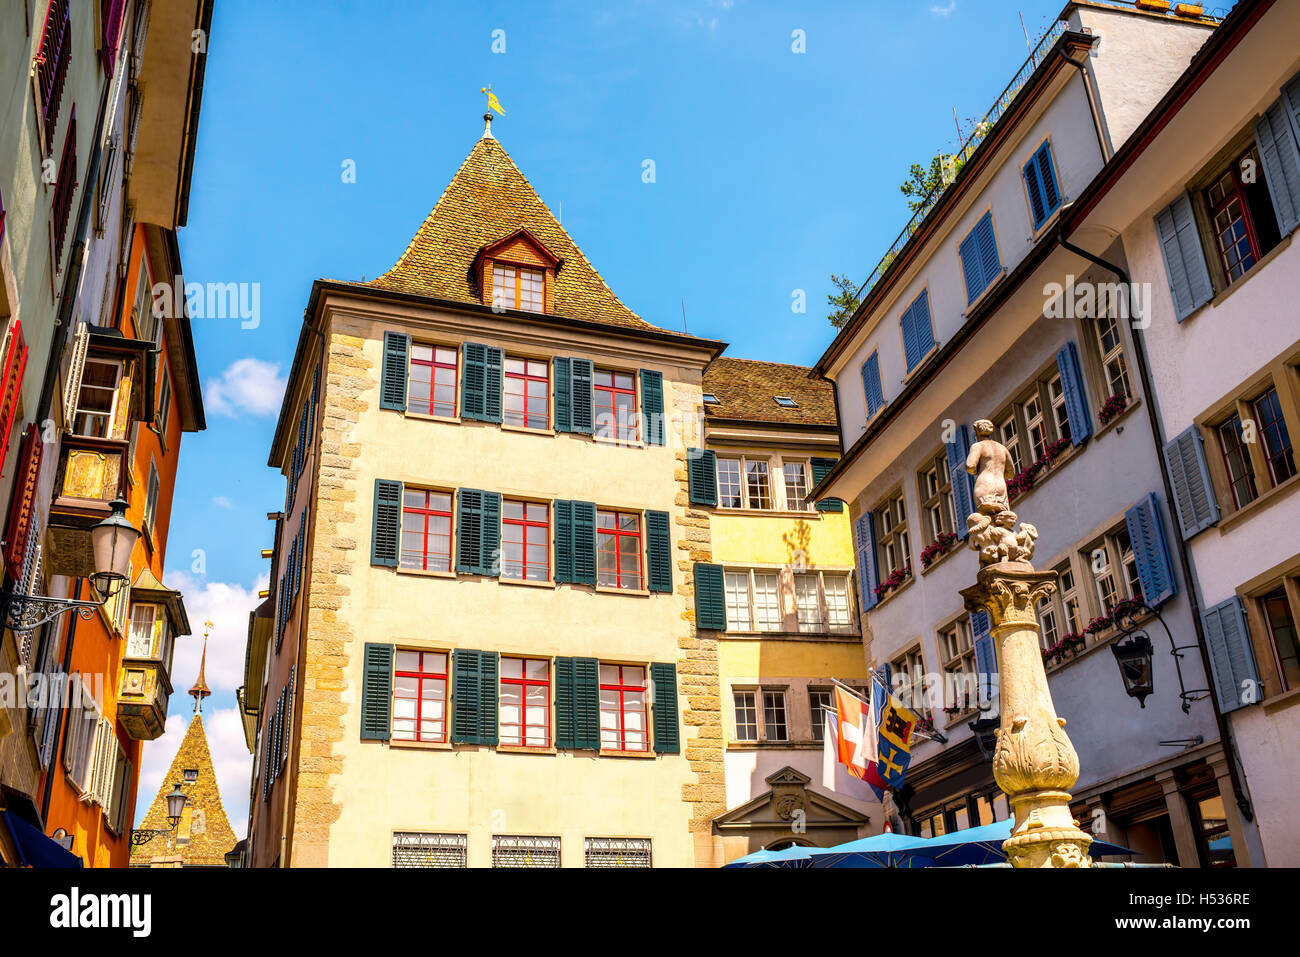 Zurich city in Switzerland - Stock Image